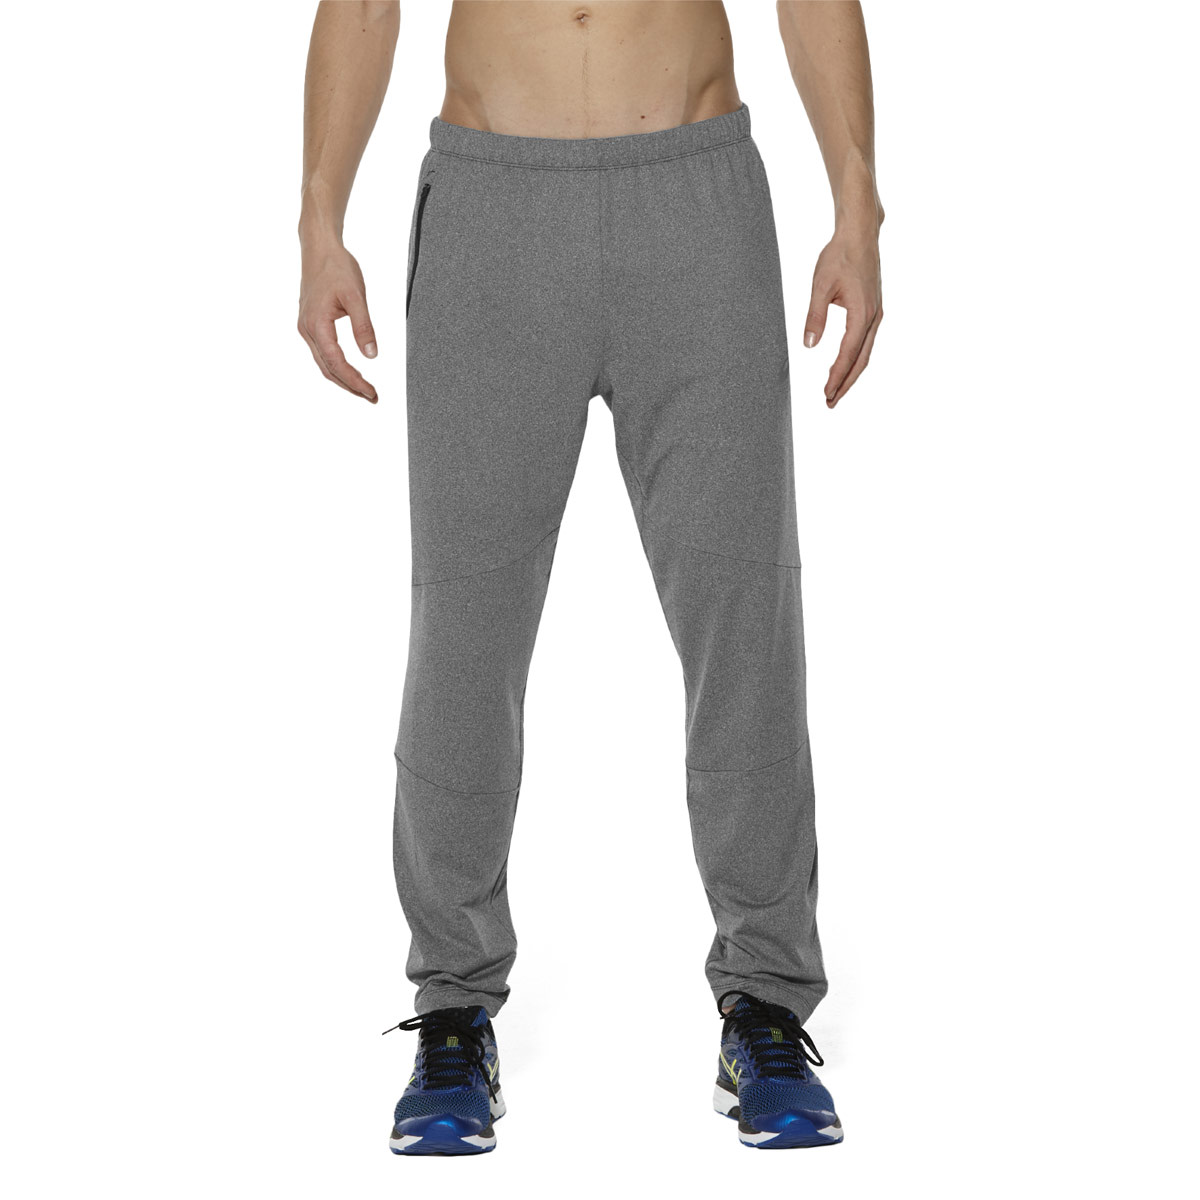 8983d0ded78b ASICS Thermopolis Pant - Running trousers for Men - Grey